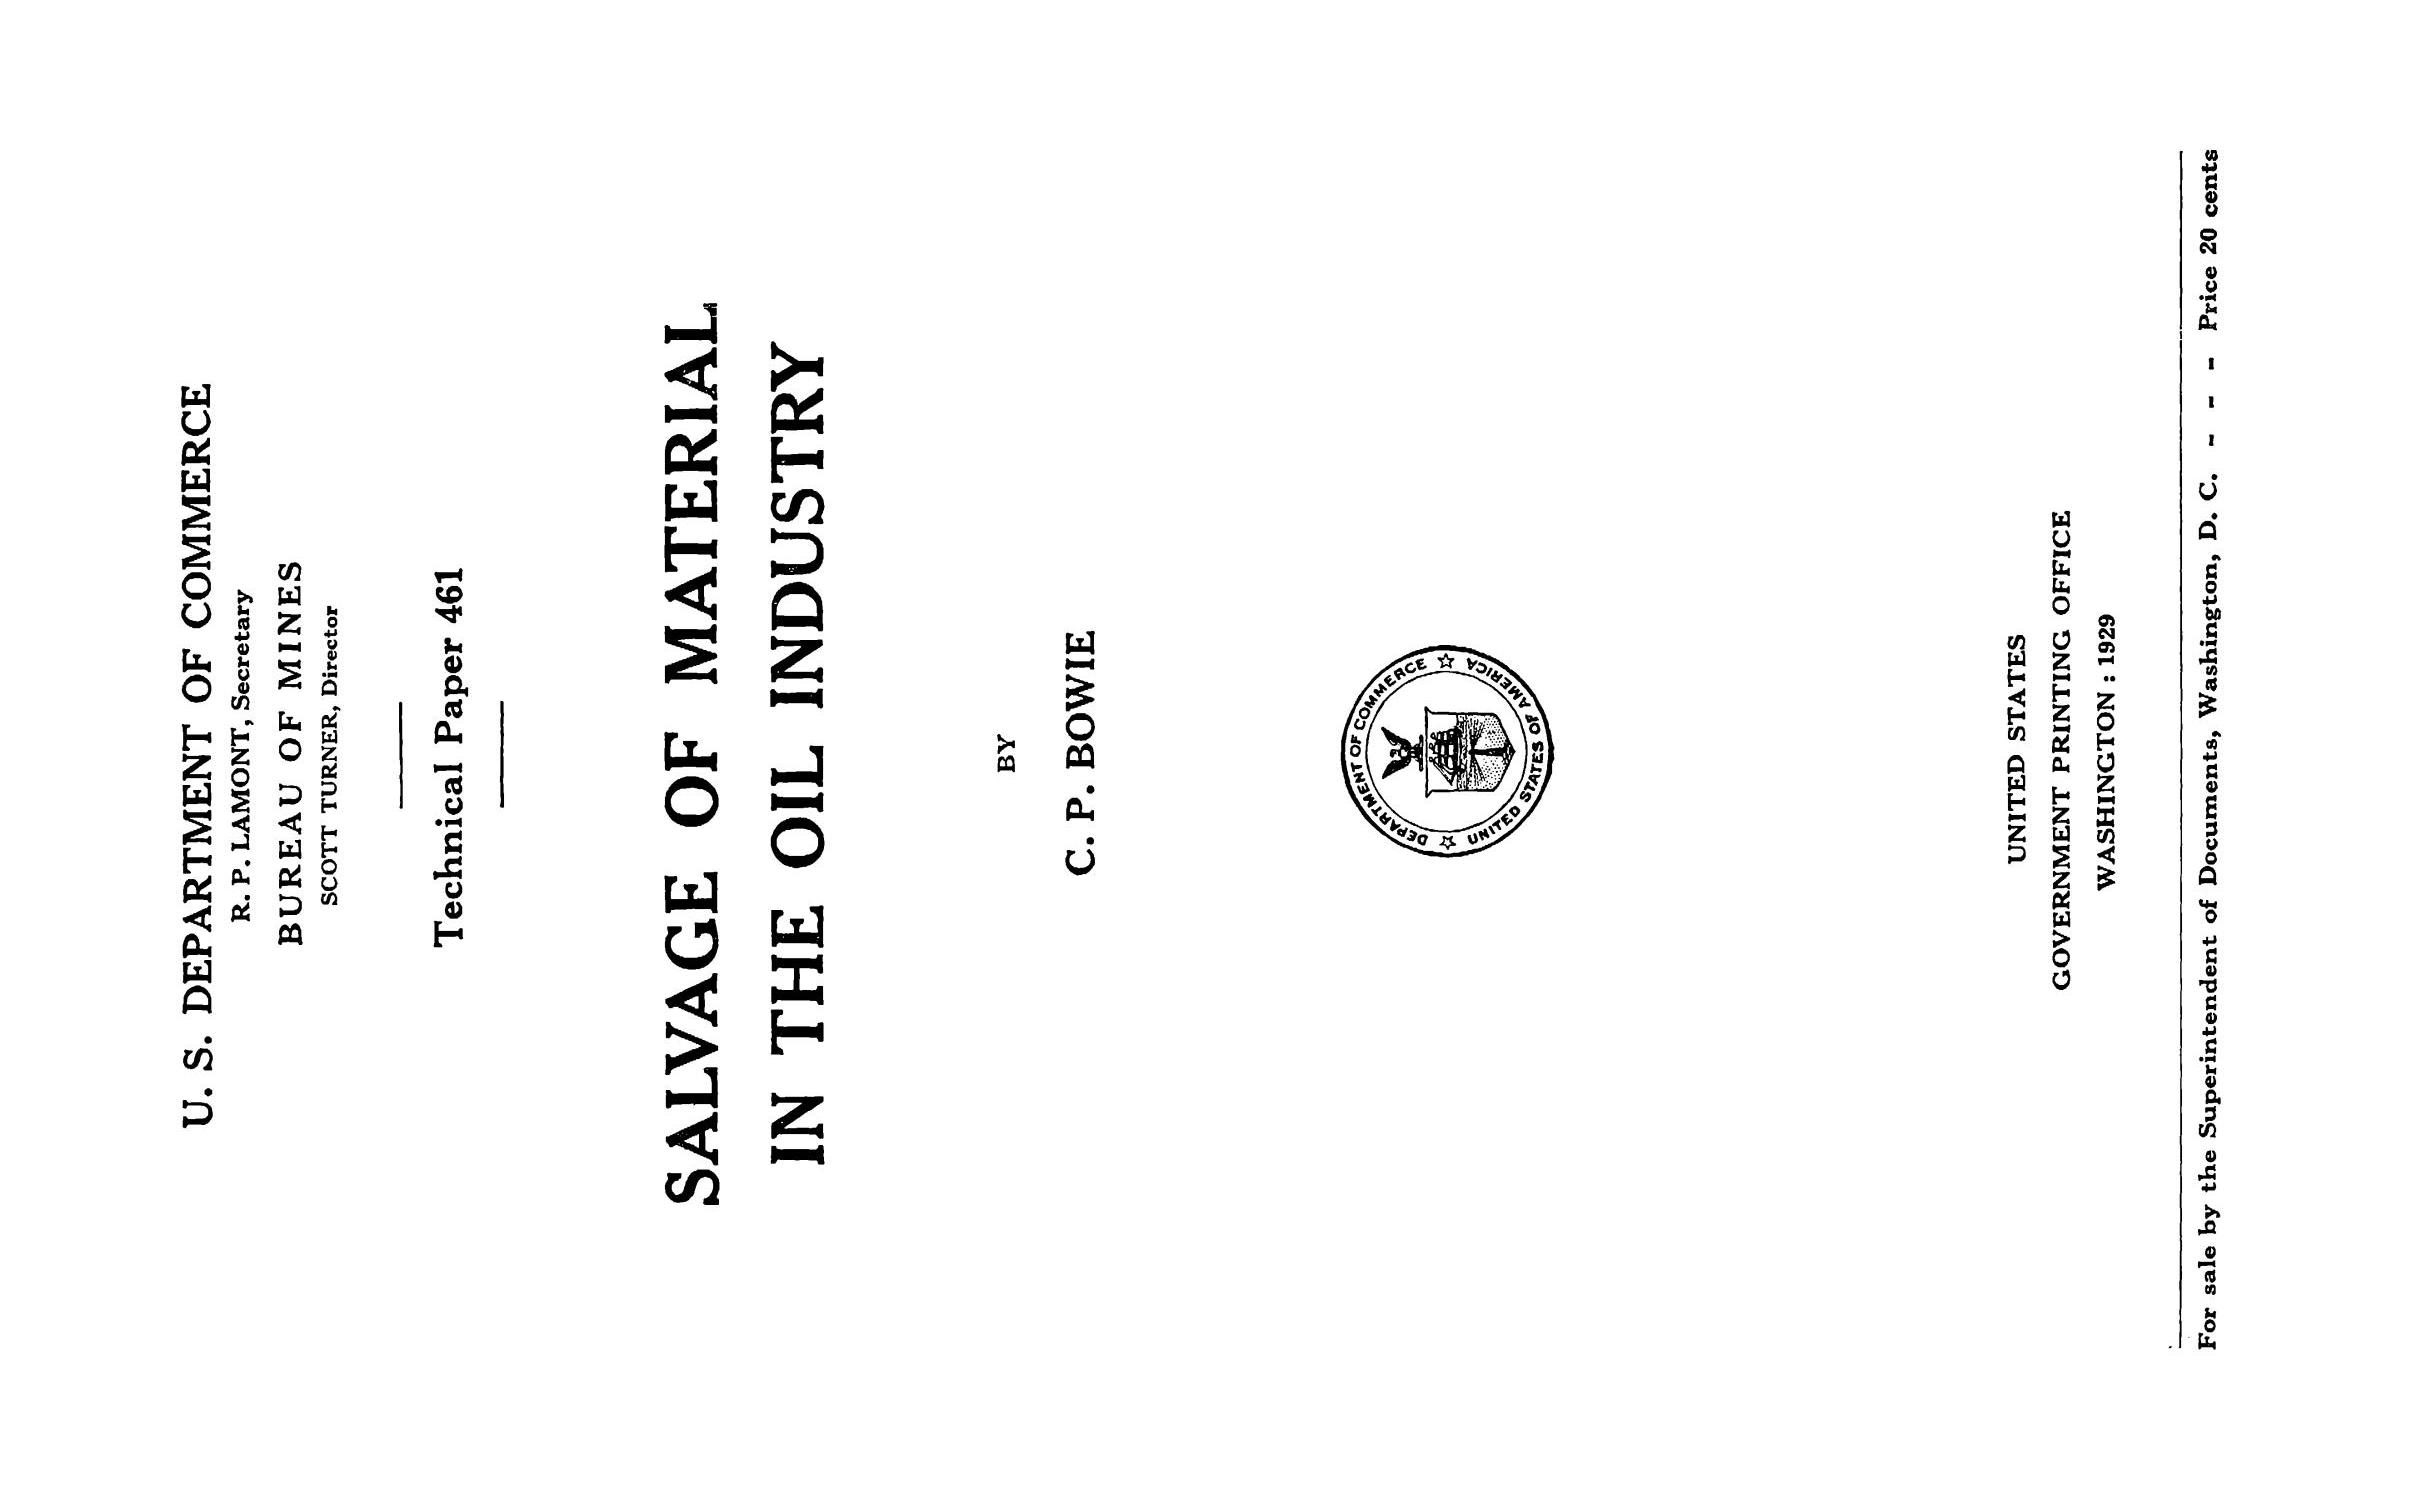 Salvage of Material in the Oil Industry                                                                                                      Title Page